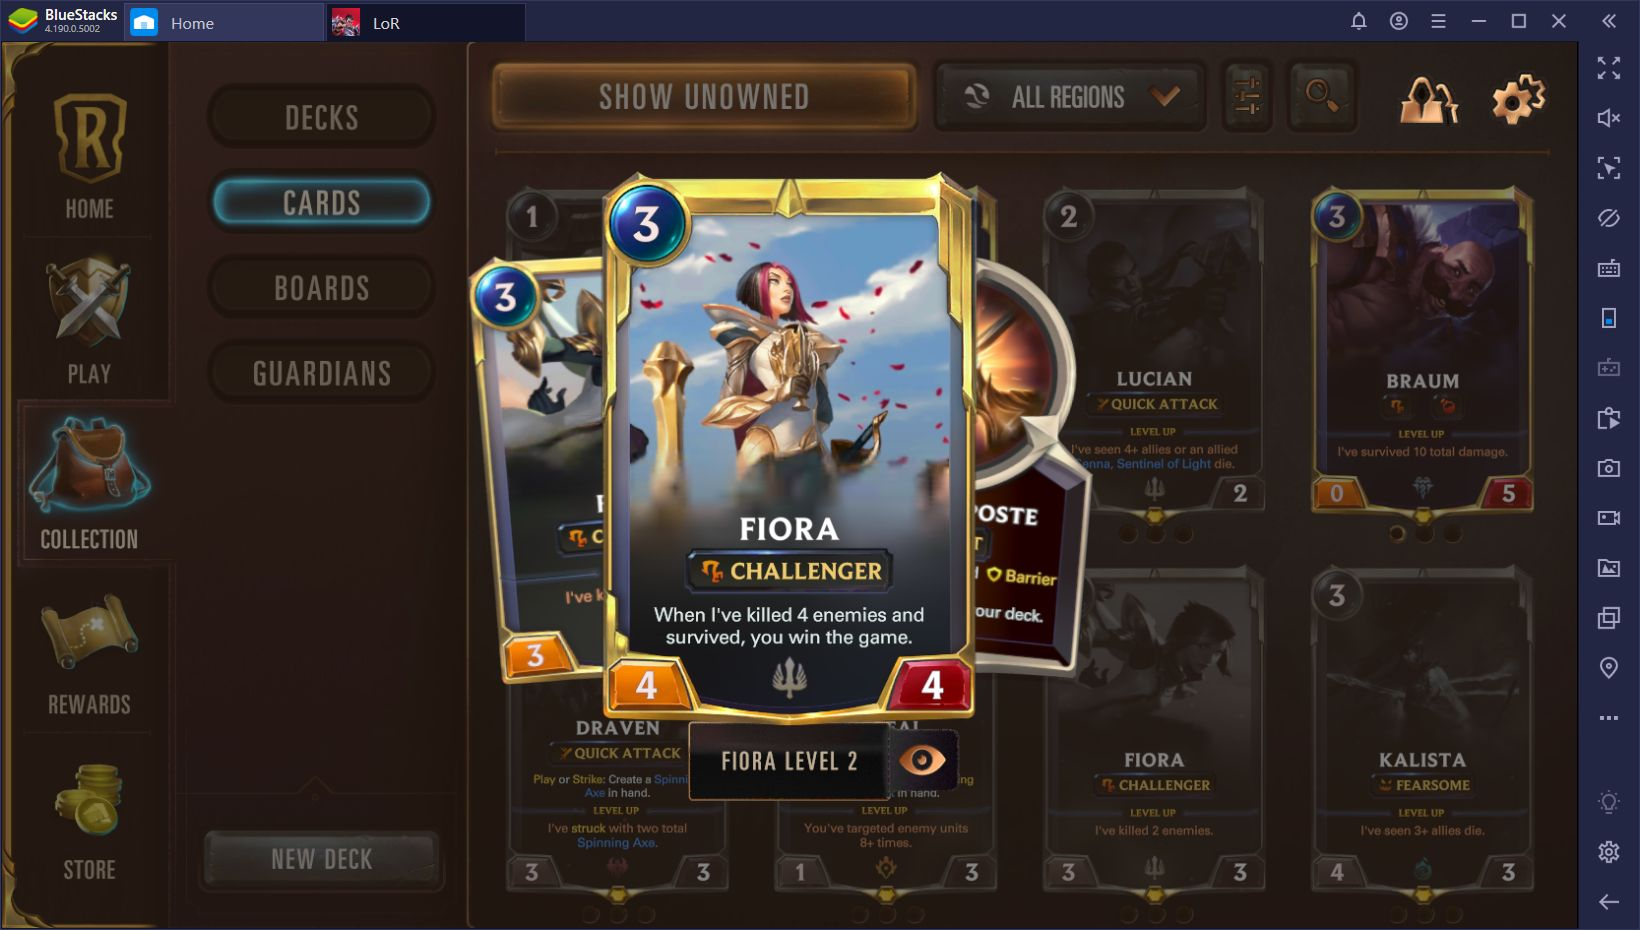 The Best Champion Cards in Legends of Runeterra (April 2020)